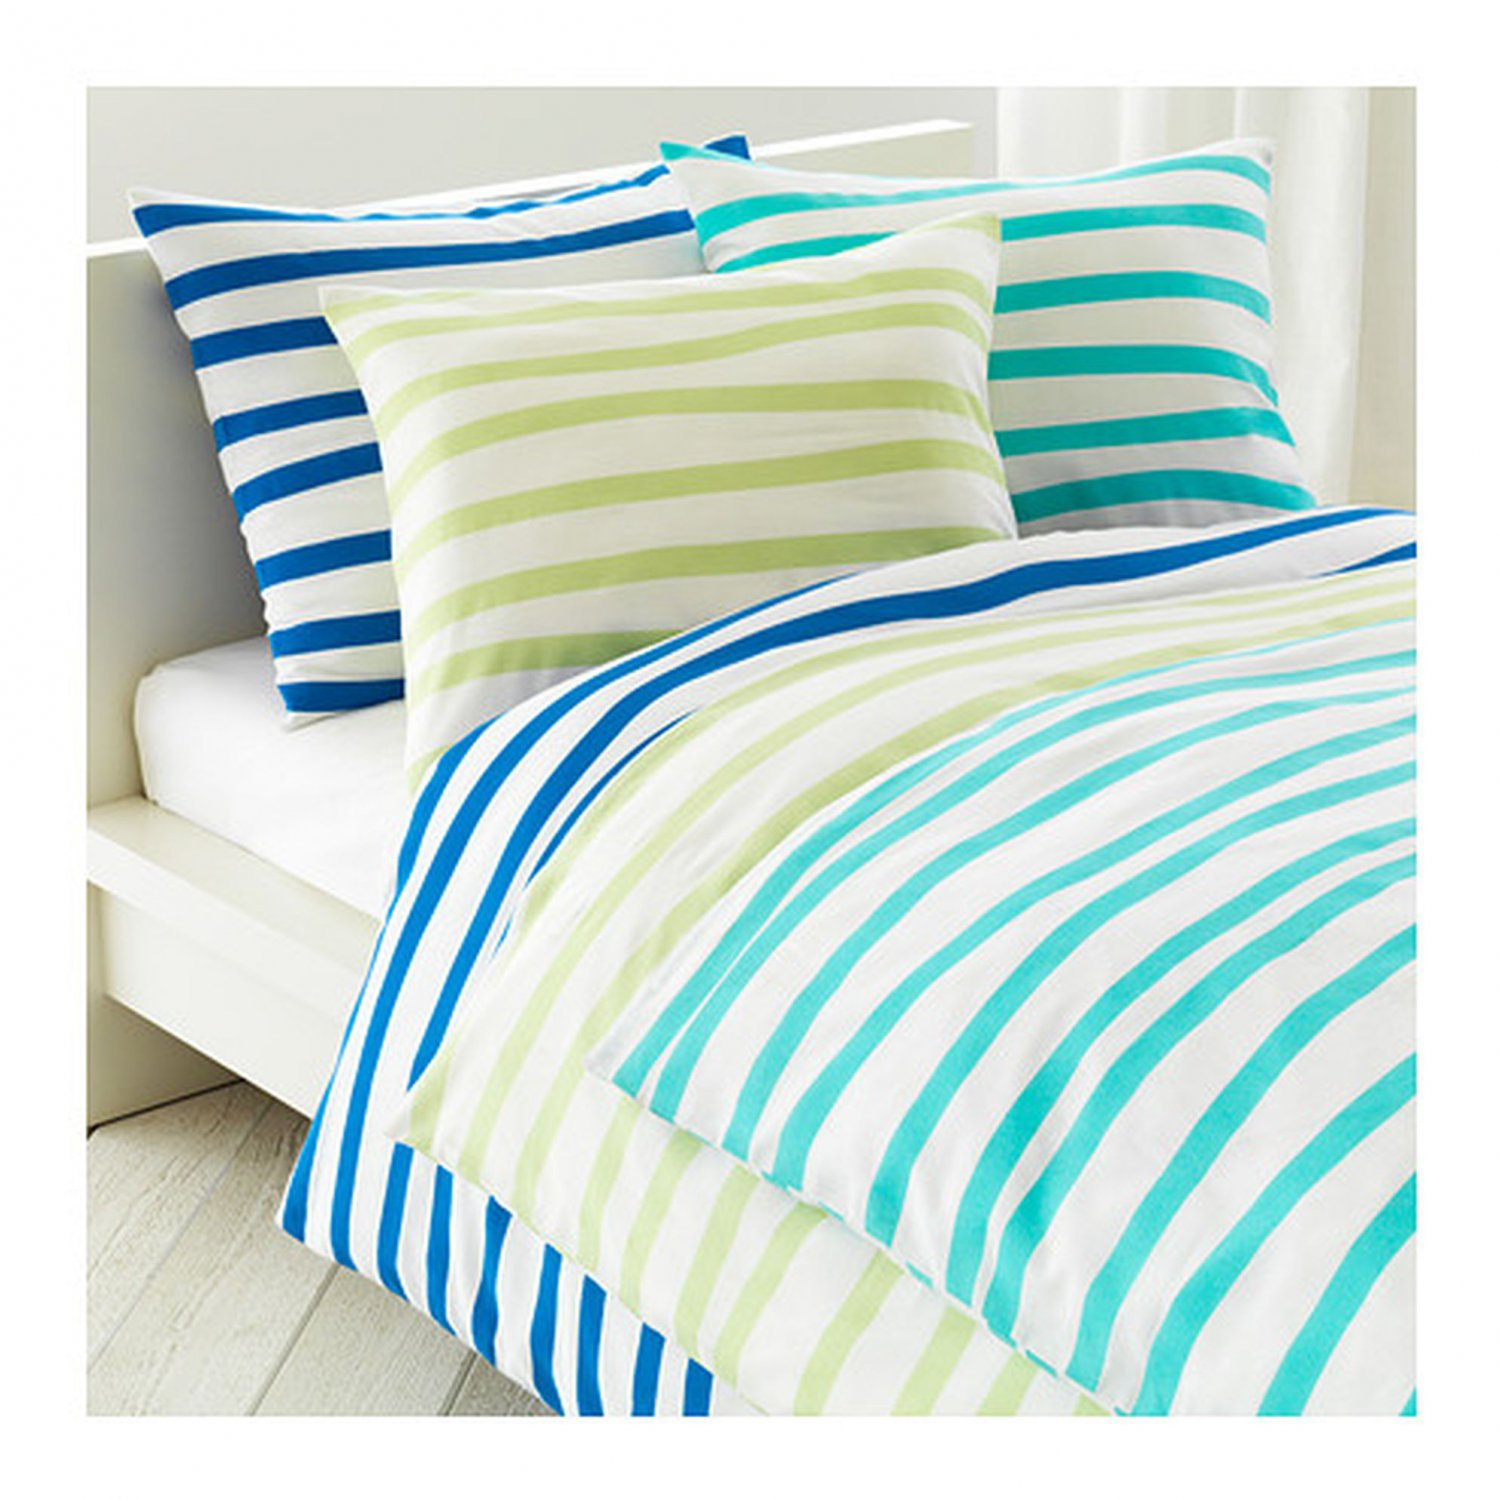 Blaue Bettwäsche Ikea Ikea Springkorn Queen Full Duvet Cover Set Wavy Striped